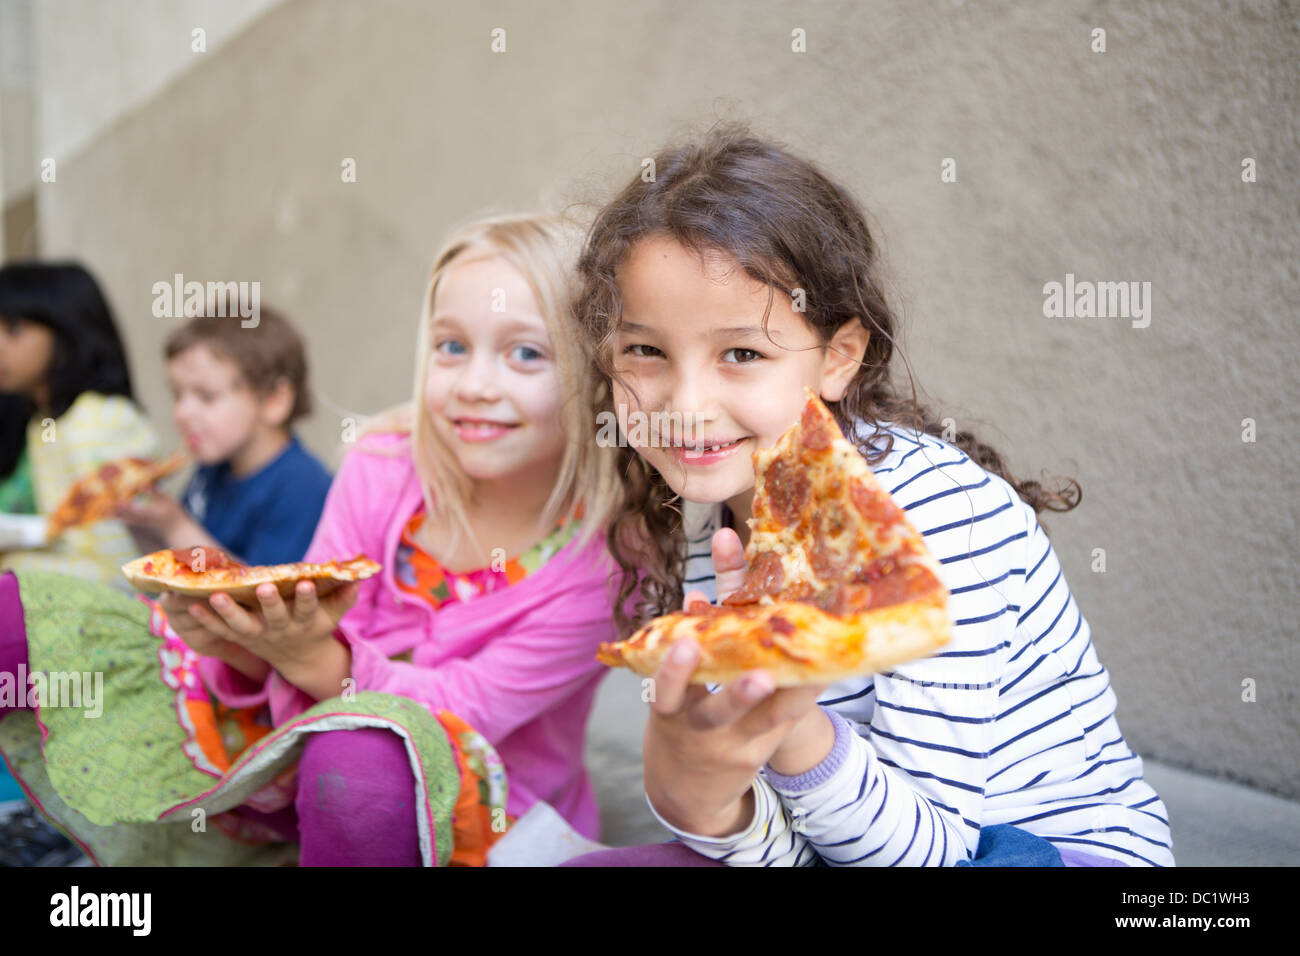 Petit groupe d'enfants eating pizza outdoors Photo Stock